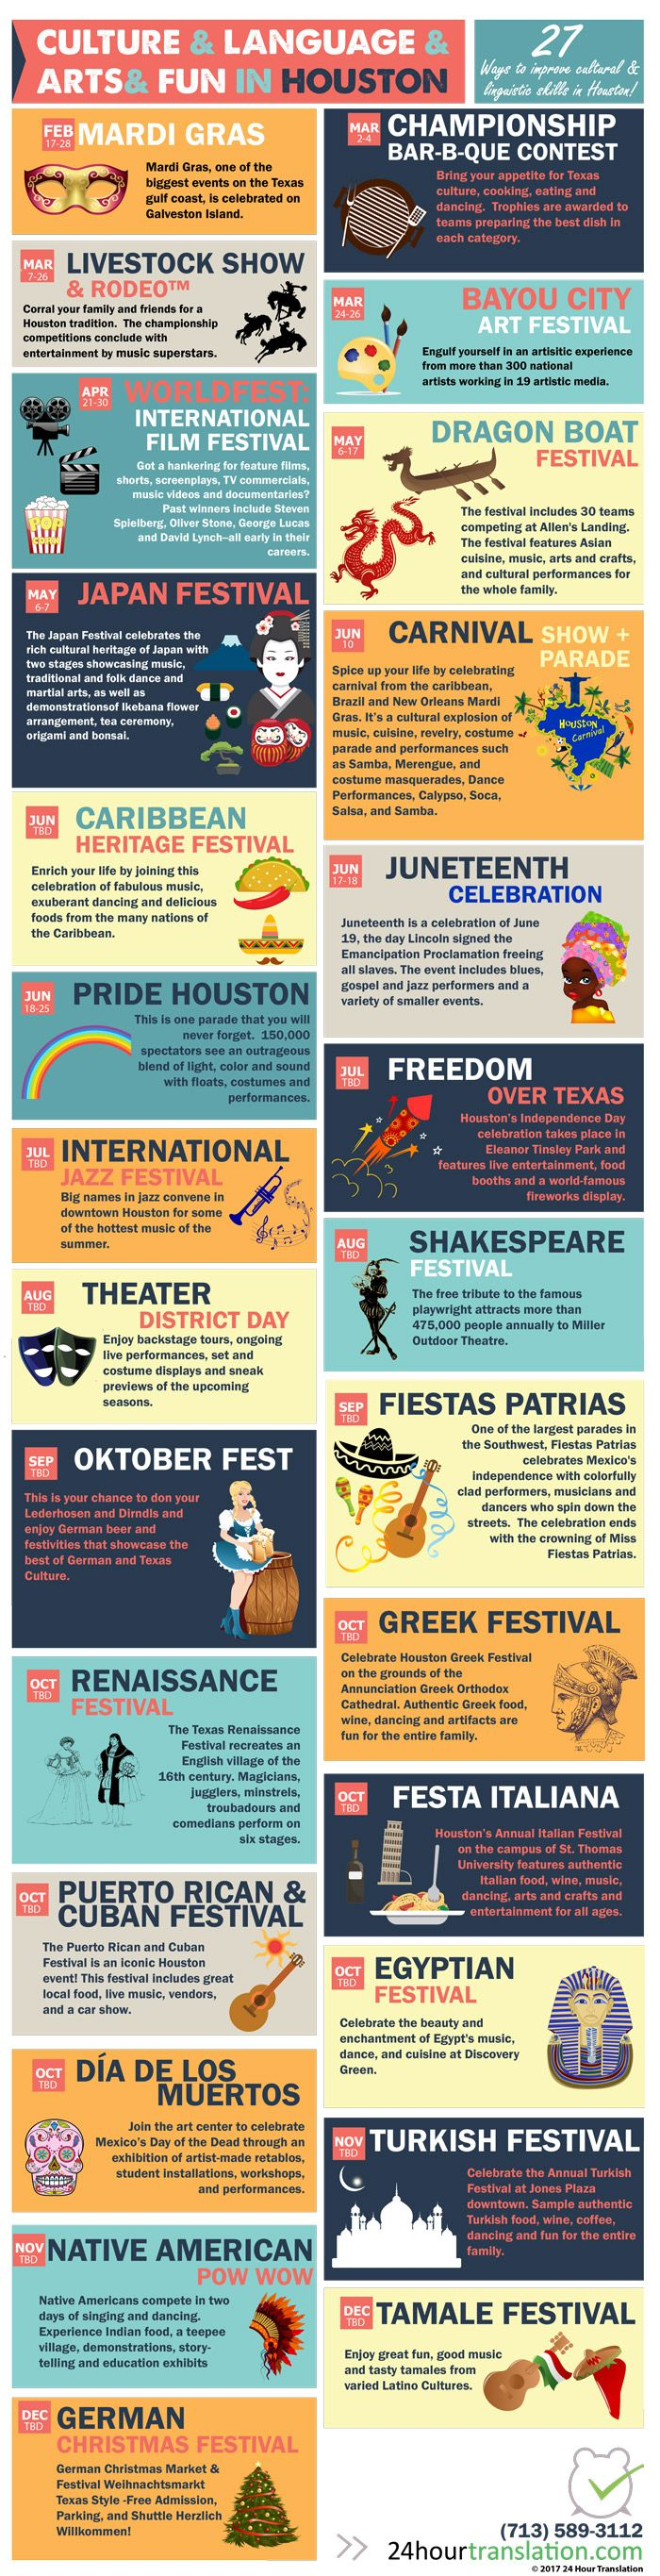 The article contains an infographic with descriptions and dates of the leading Houston festivals and multicultural events.